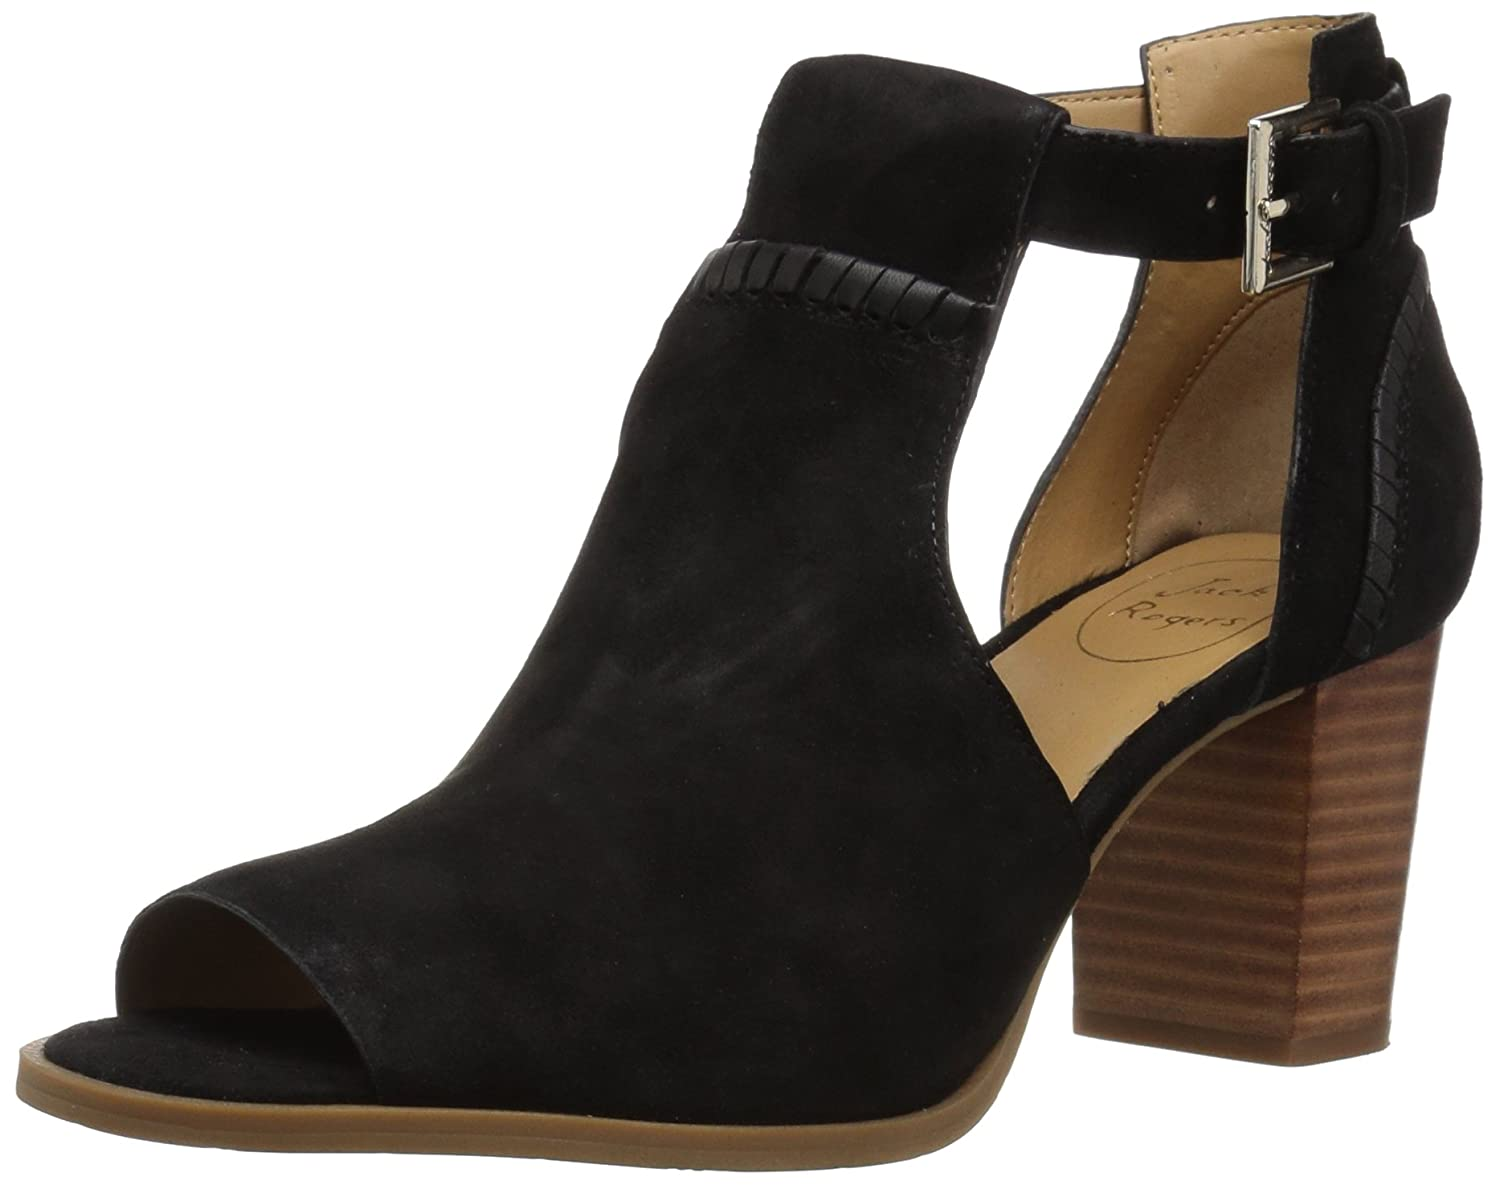 Jack Rogers Women's Cameron Suede Fashion Boot B077YBRVWN 8.5 M US|Black Suede